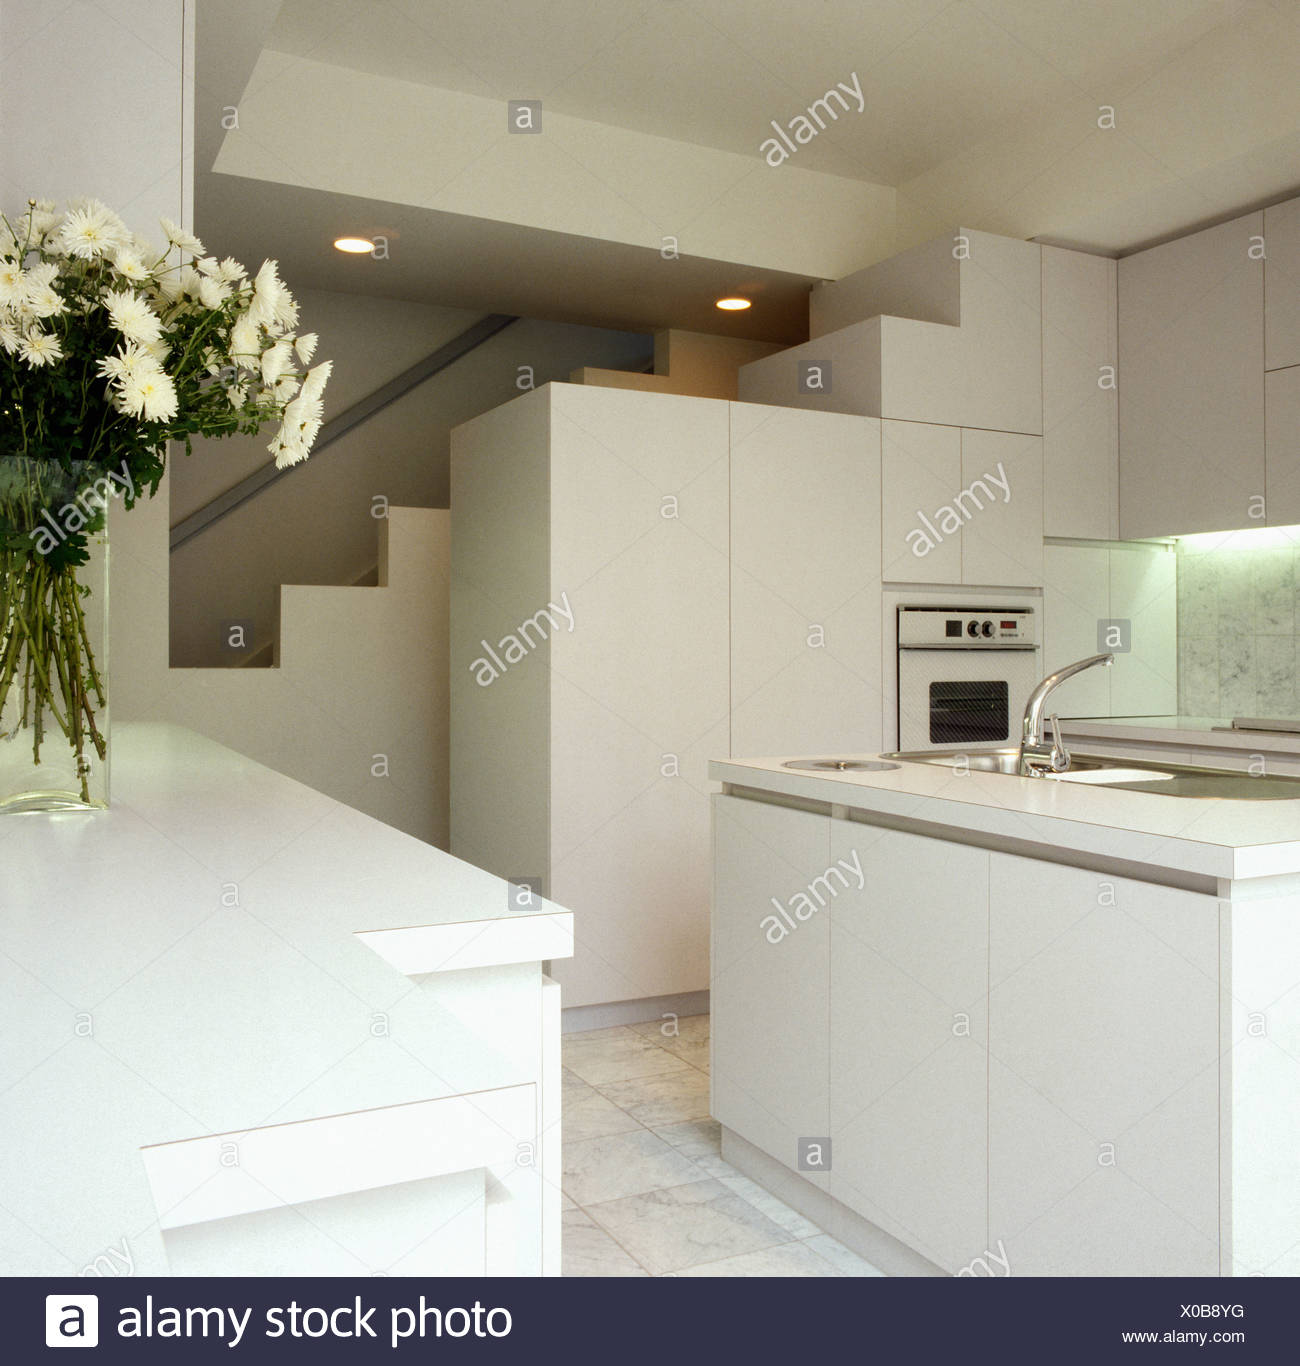 White Basement Stockfotos & White Basement Bilder - Alamy